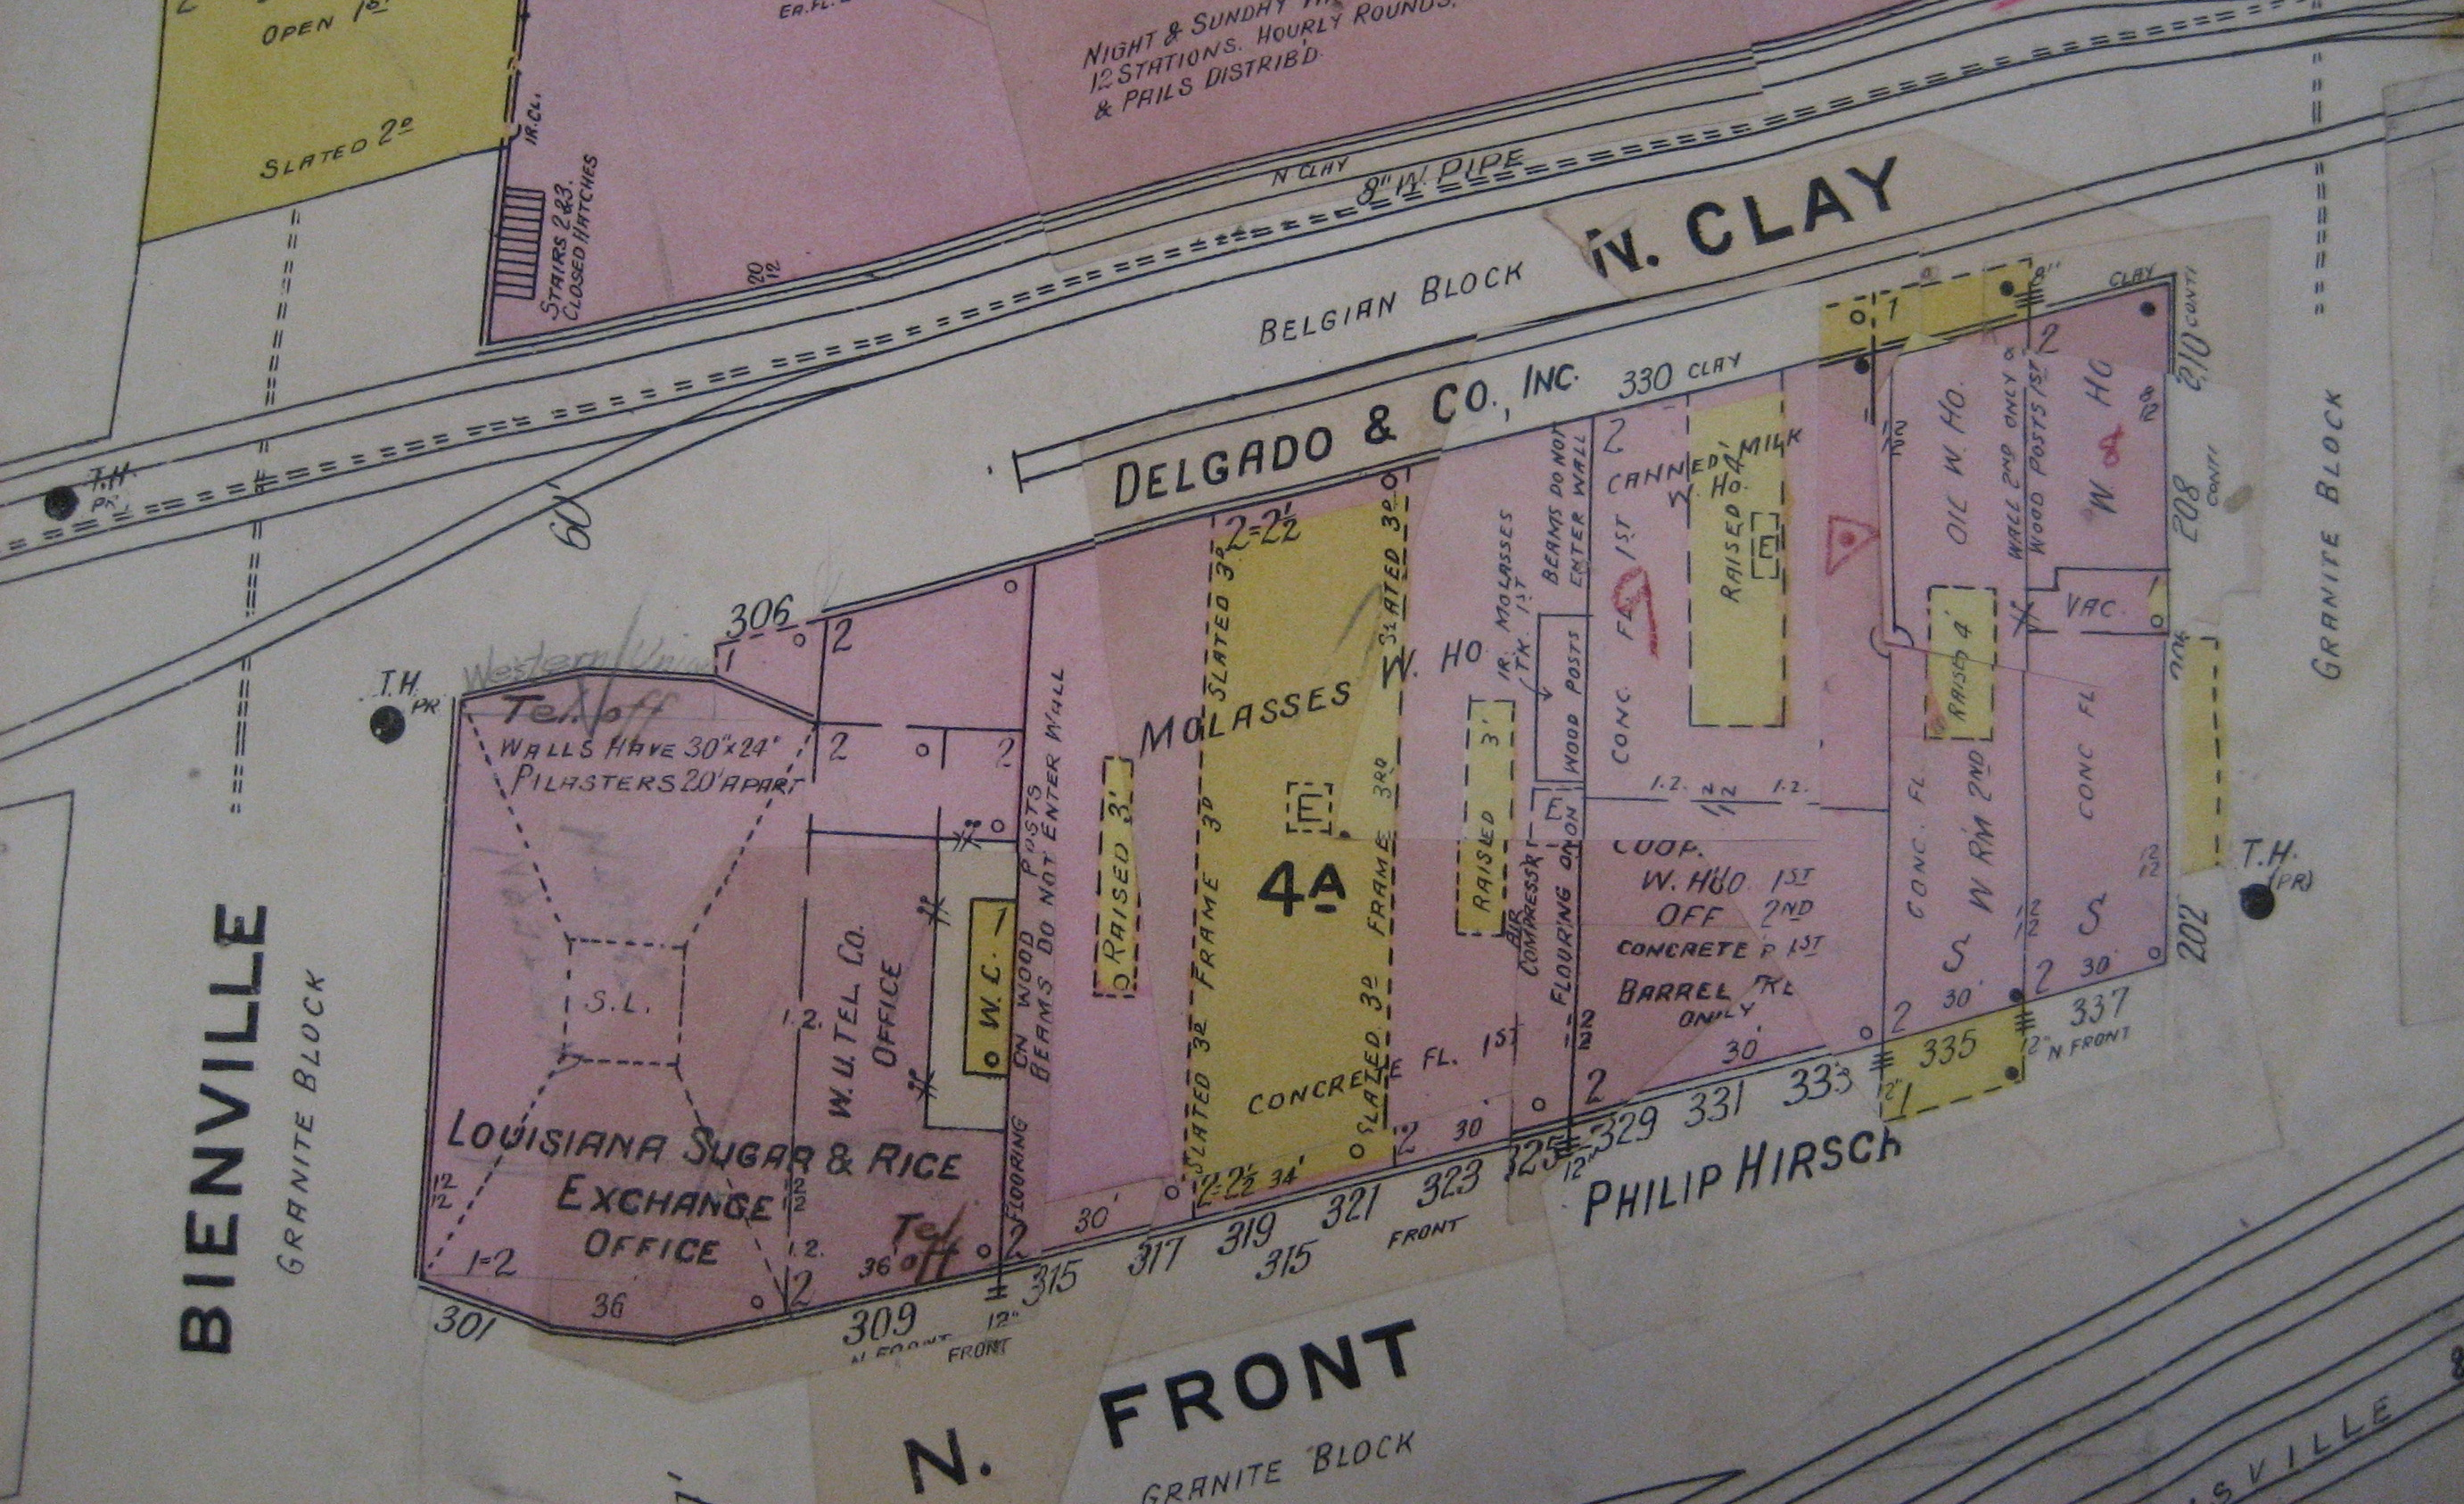 Early 20th century Sanborn map showing a (since demolished) block of [[New Orleans